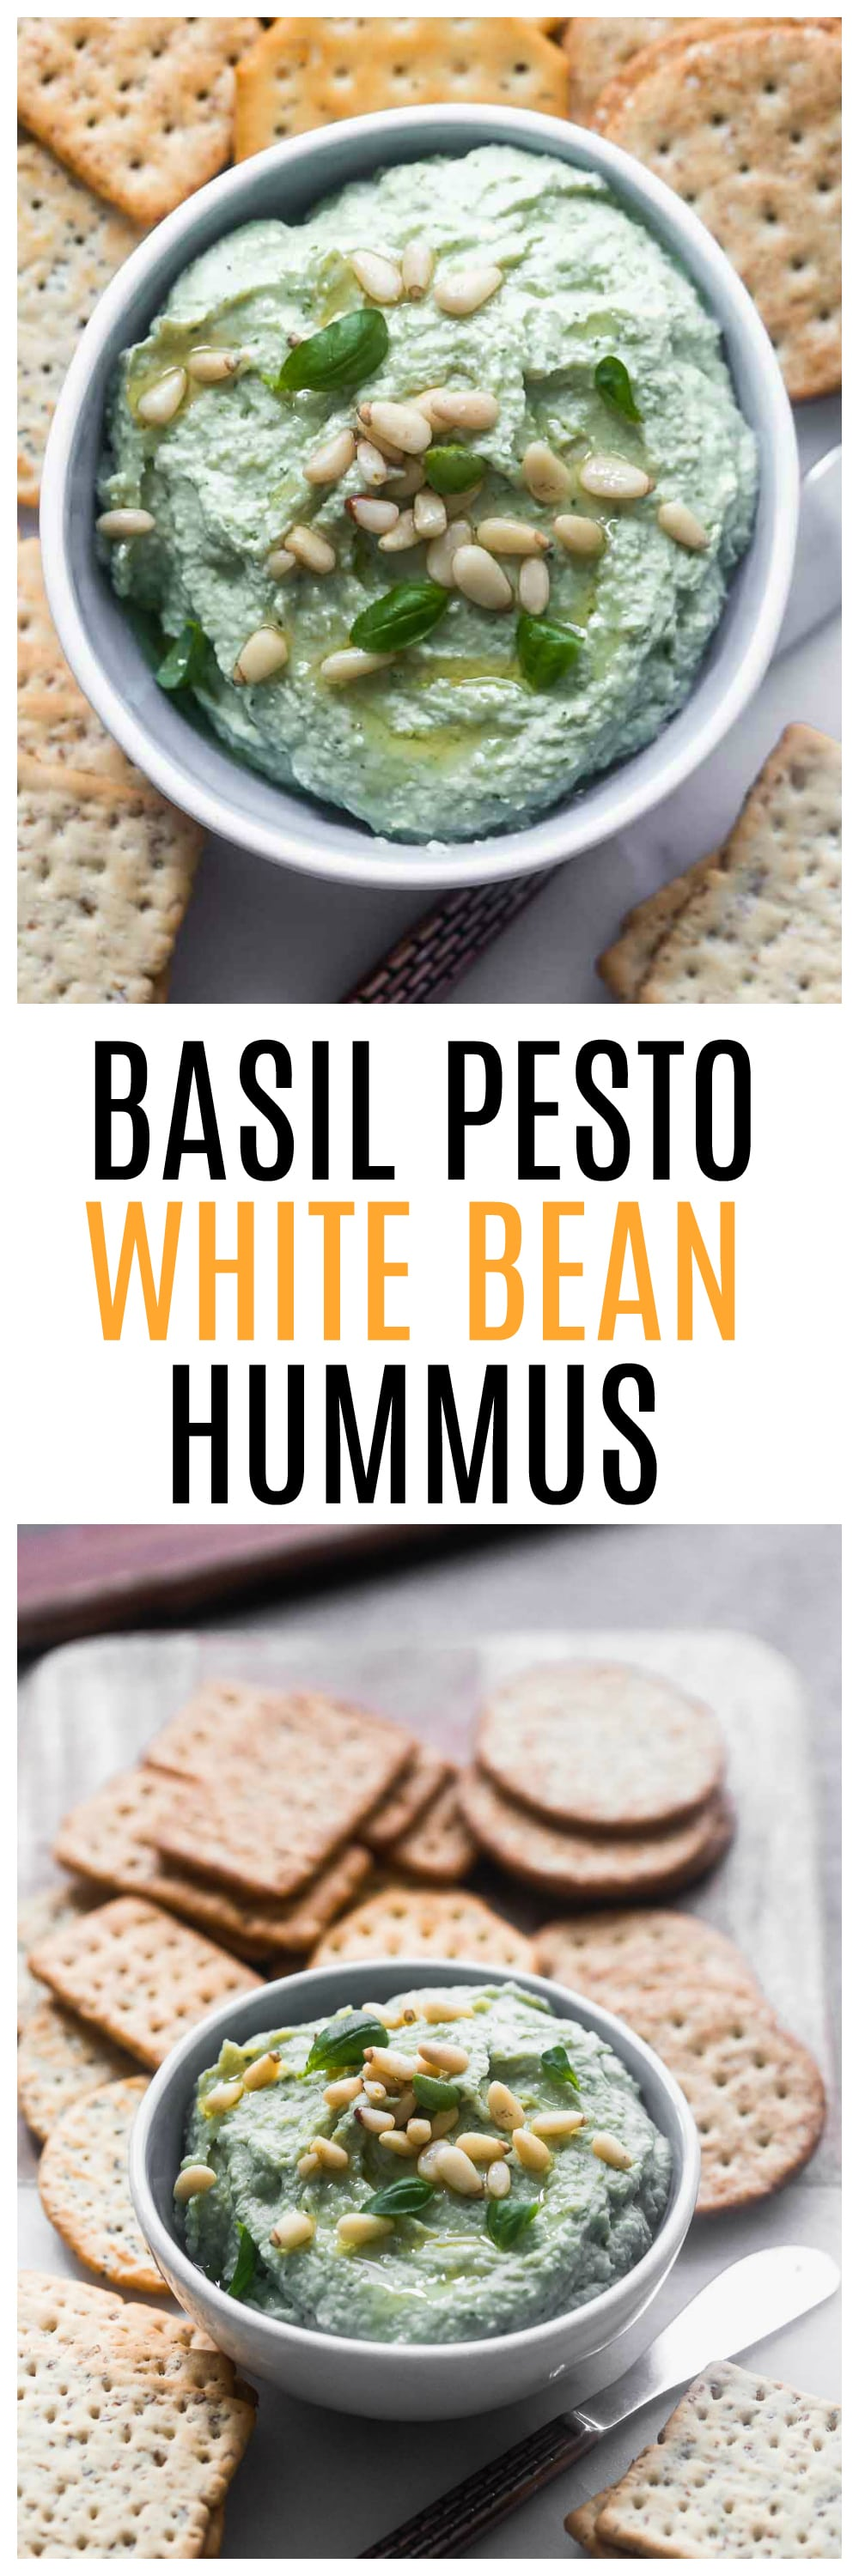 Pesto White Bean Hummus